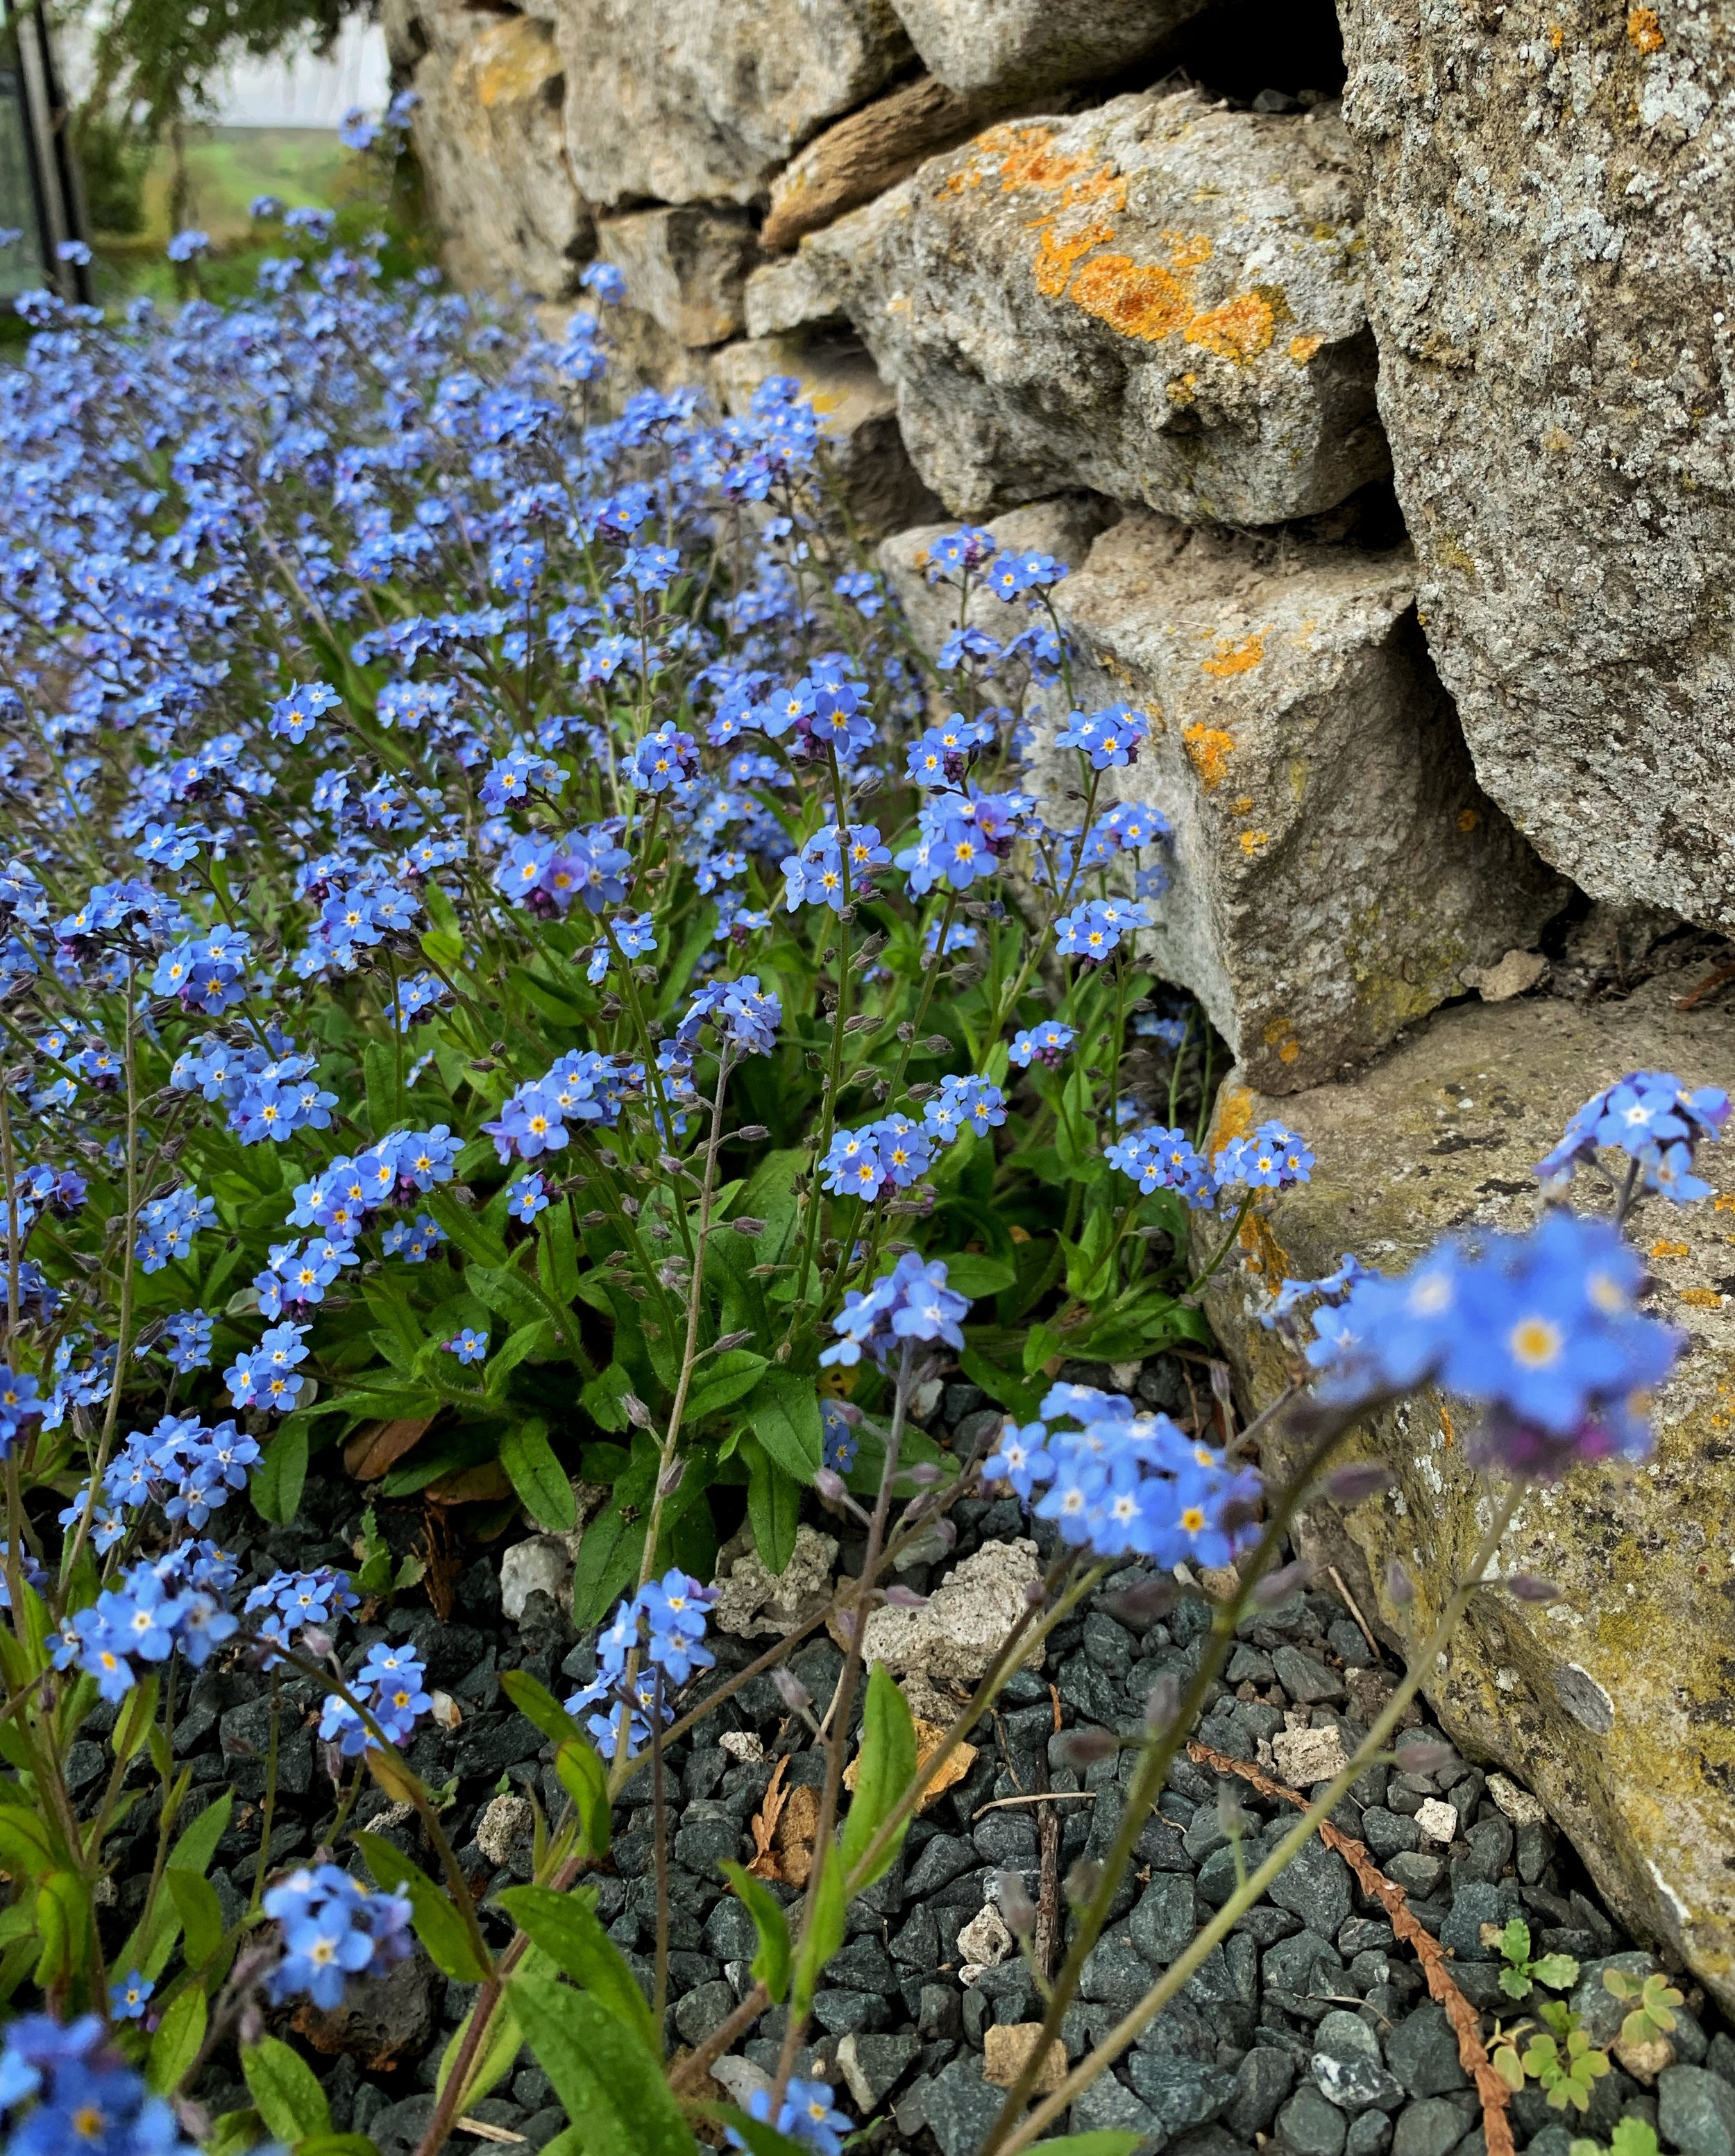 Forget-me-nots decorate the Yorkshire landscape. Photo by anne richardson